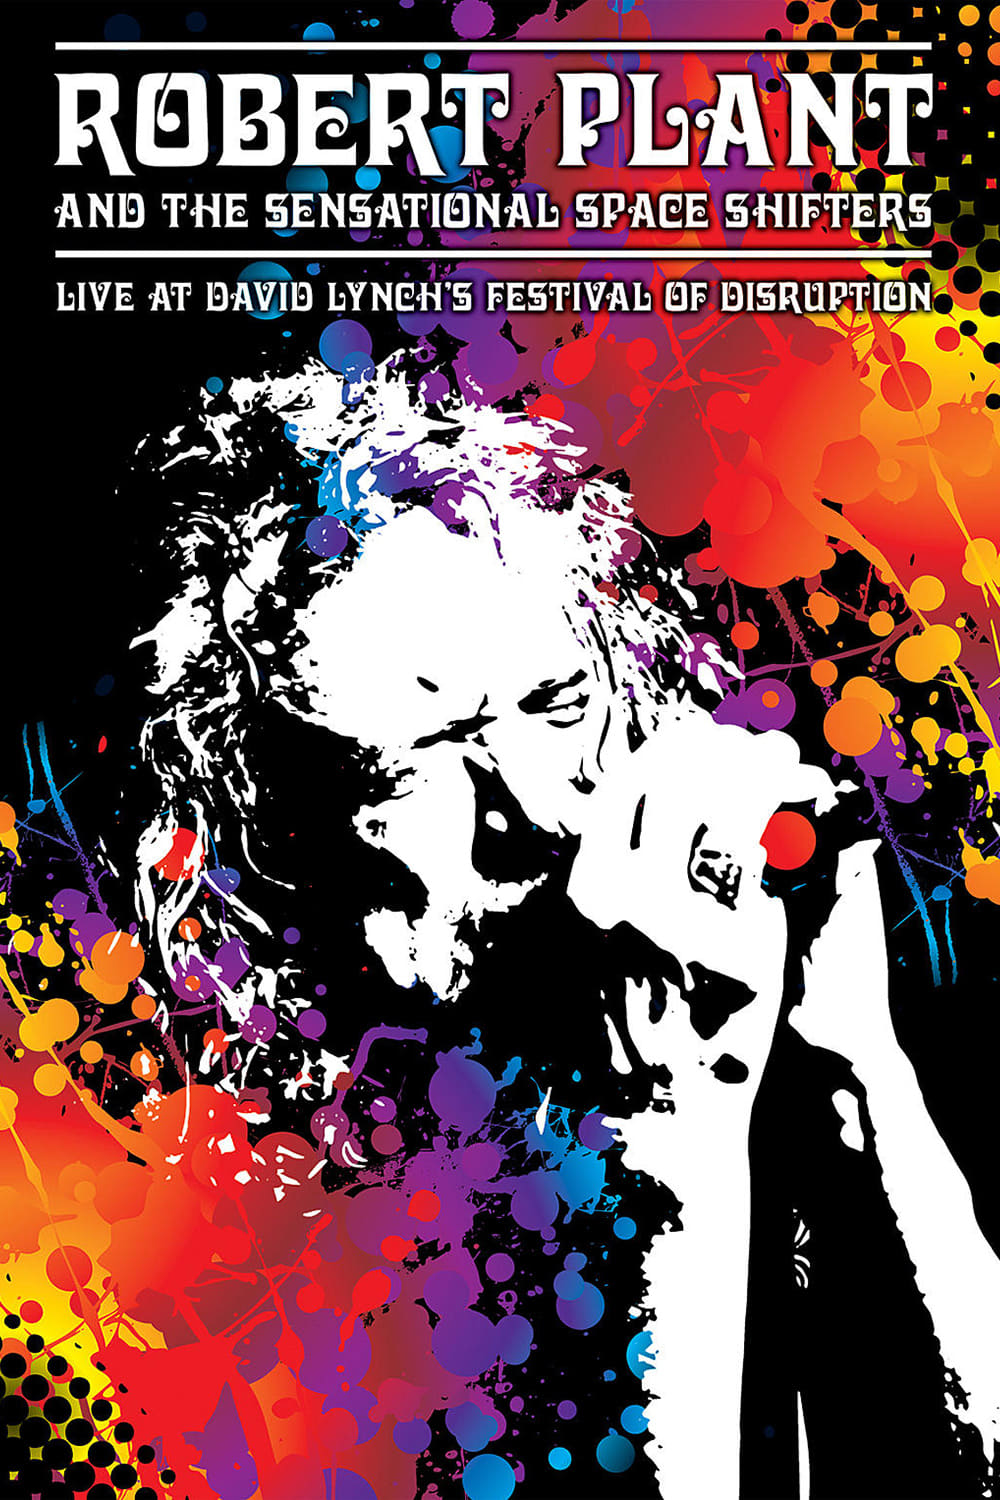 Robert Plant and the Sensational Space Shifters: Live at David Lynch's Festival of Disruption (2018)